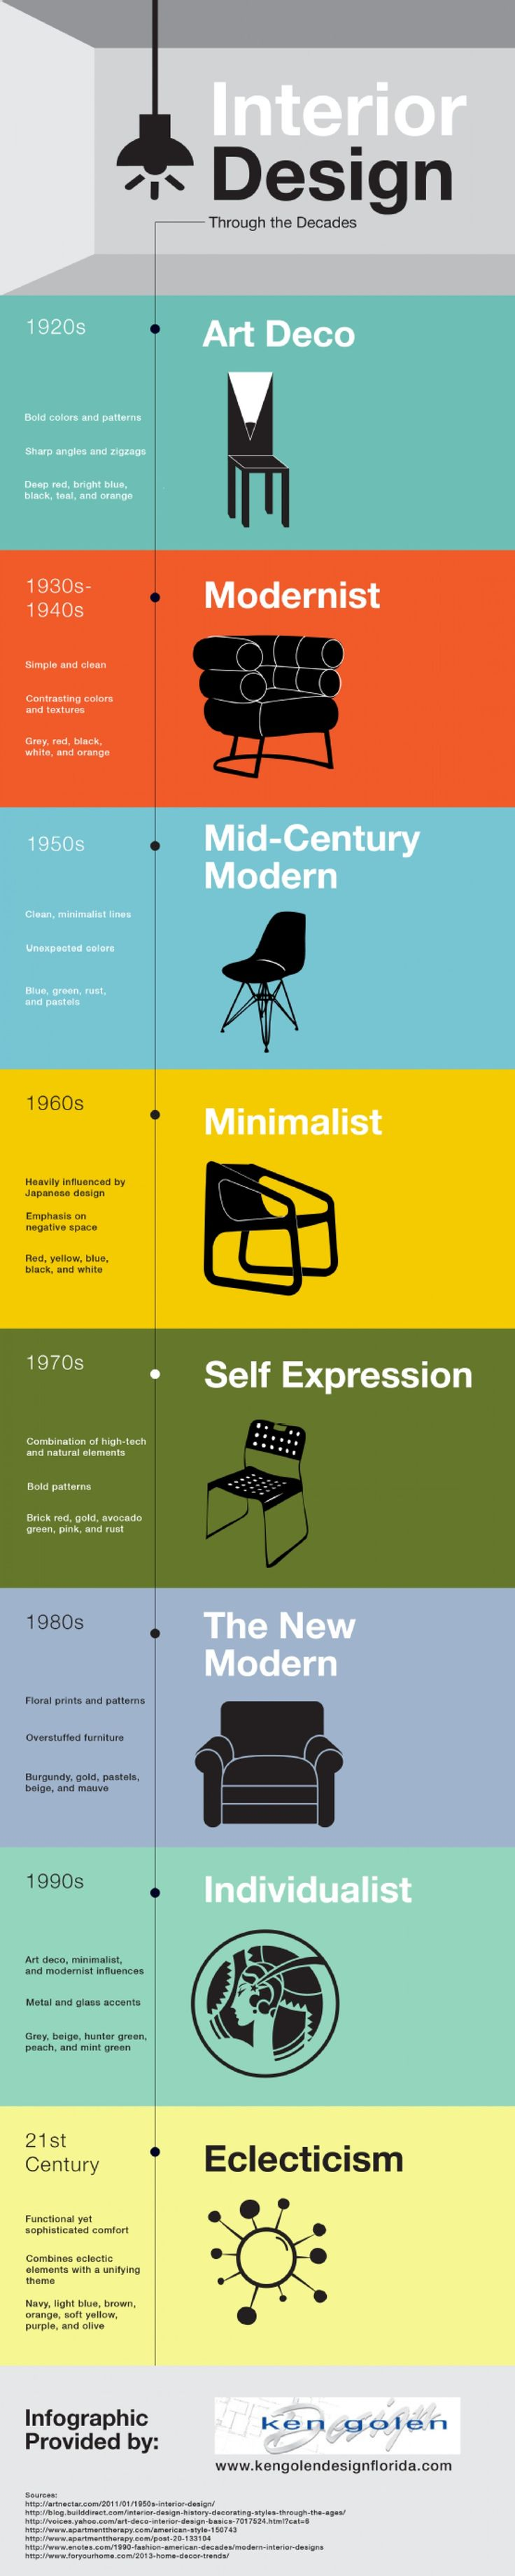 Infographic: Interior design through the decades - Designers on Display